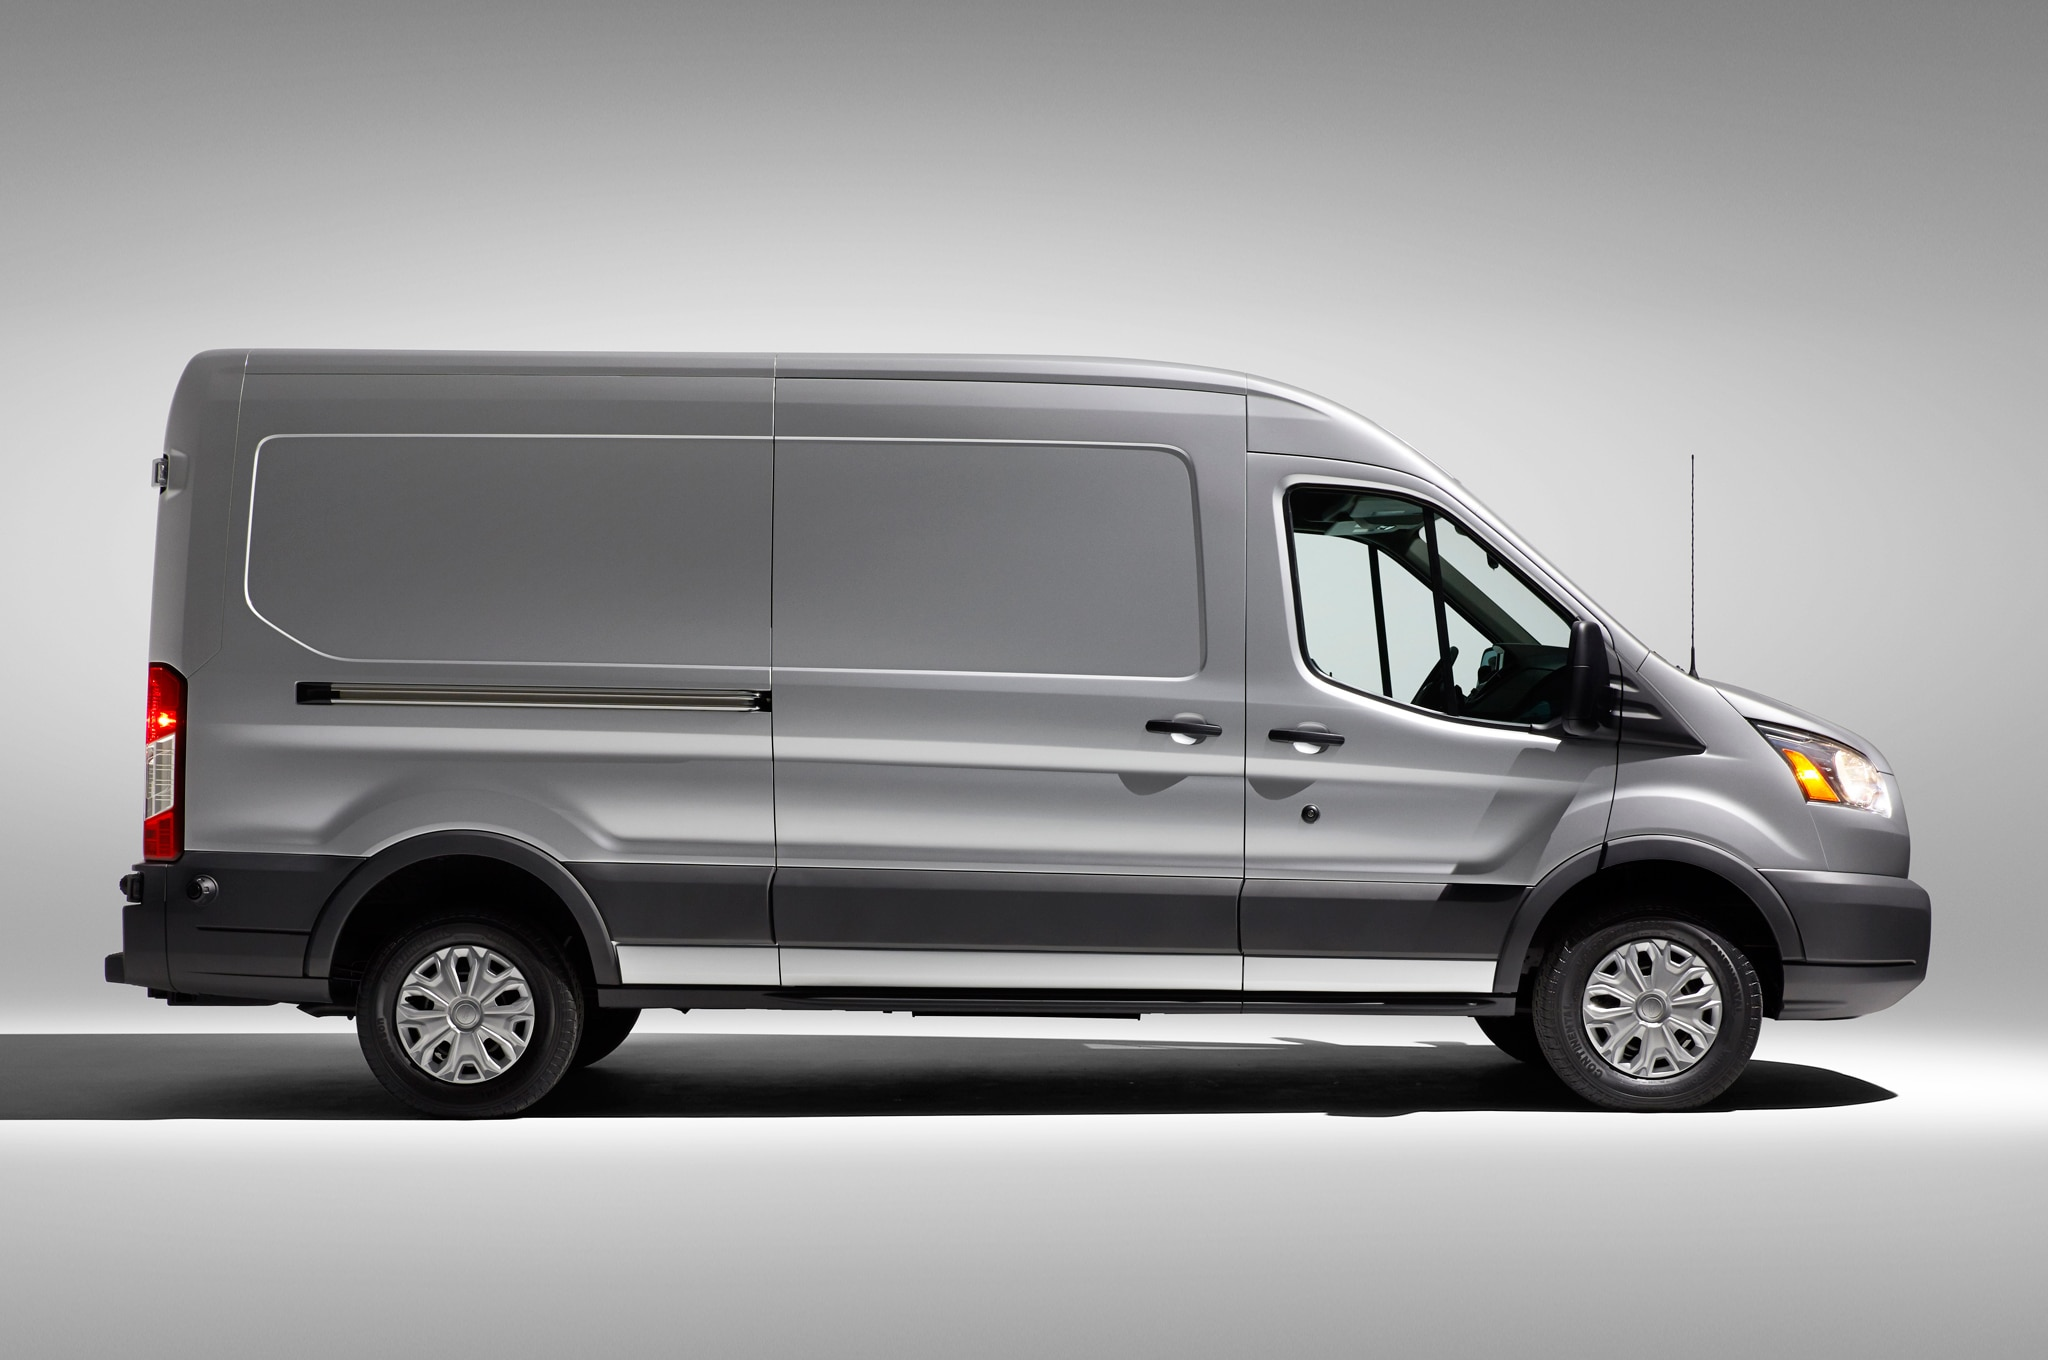 2015 Ford Transit Cargo Van Review - photo#6